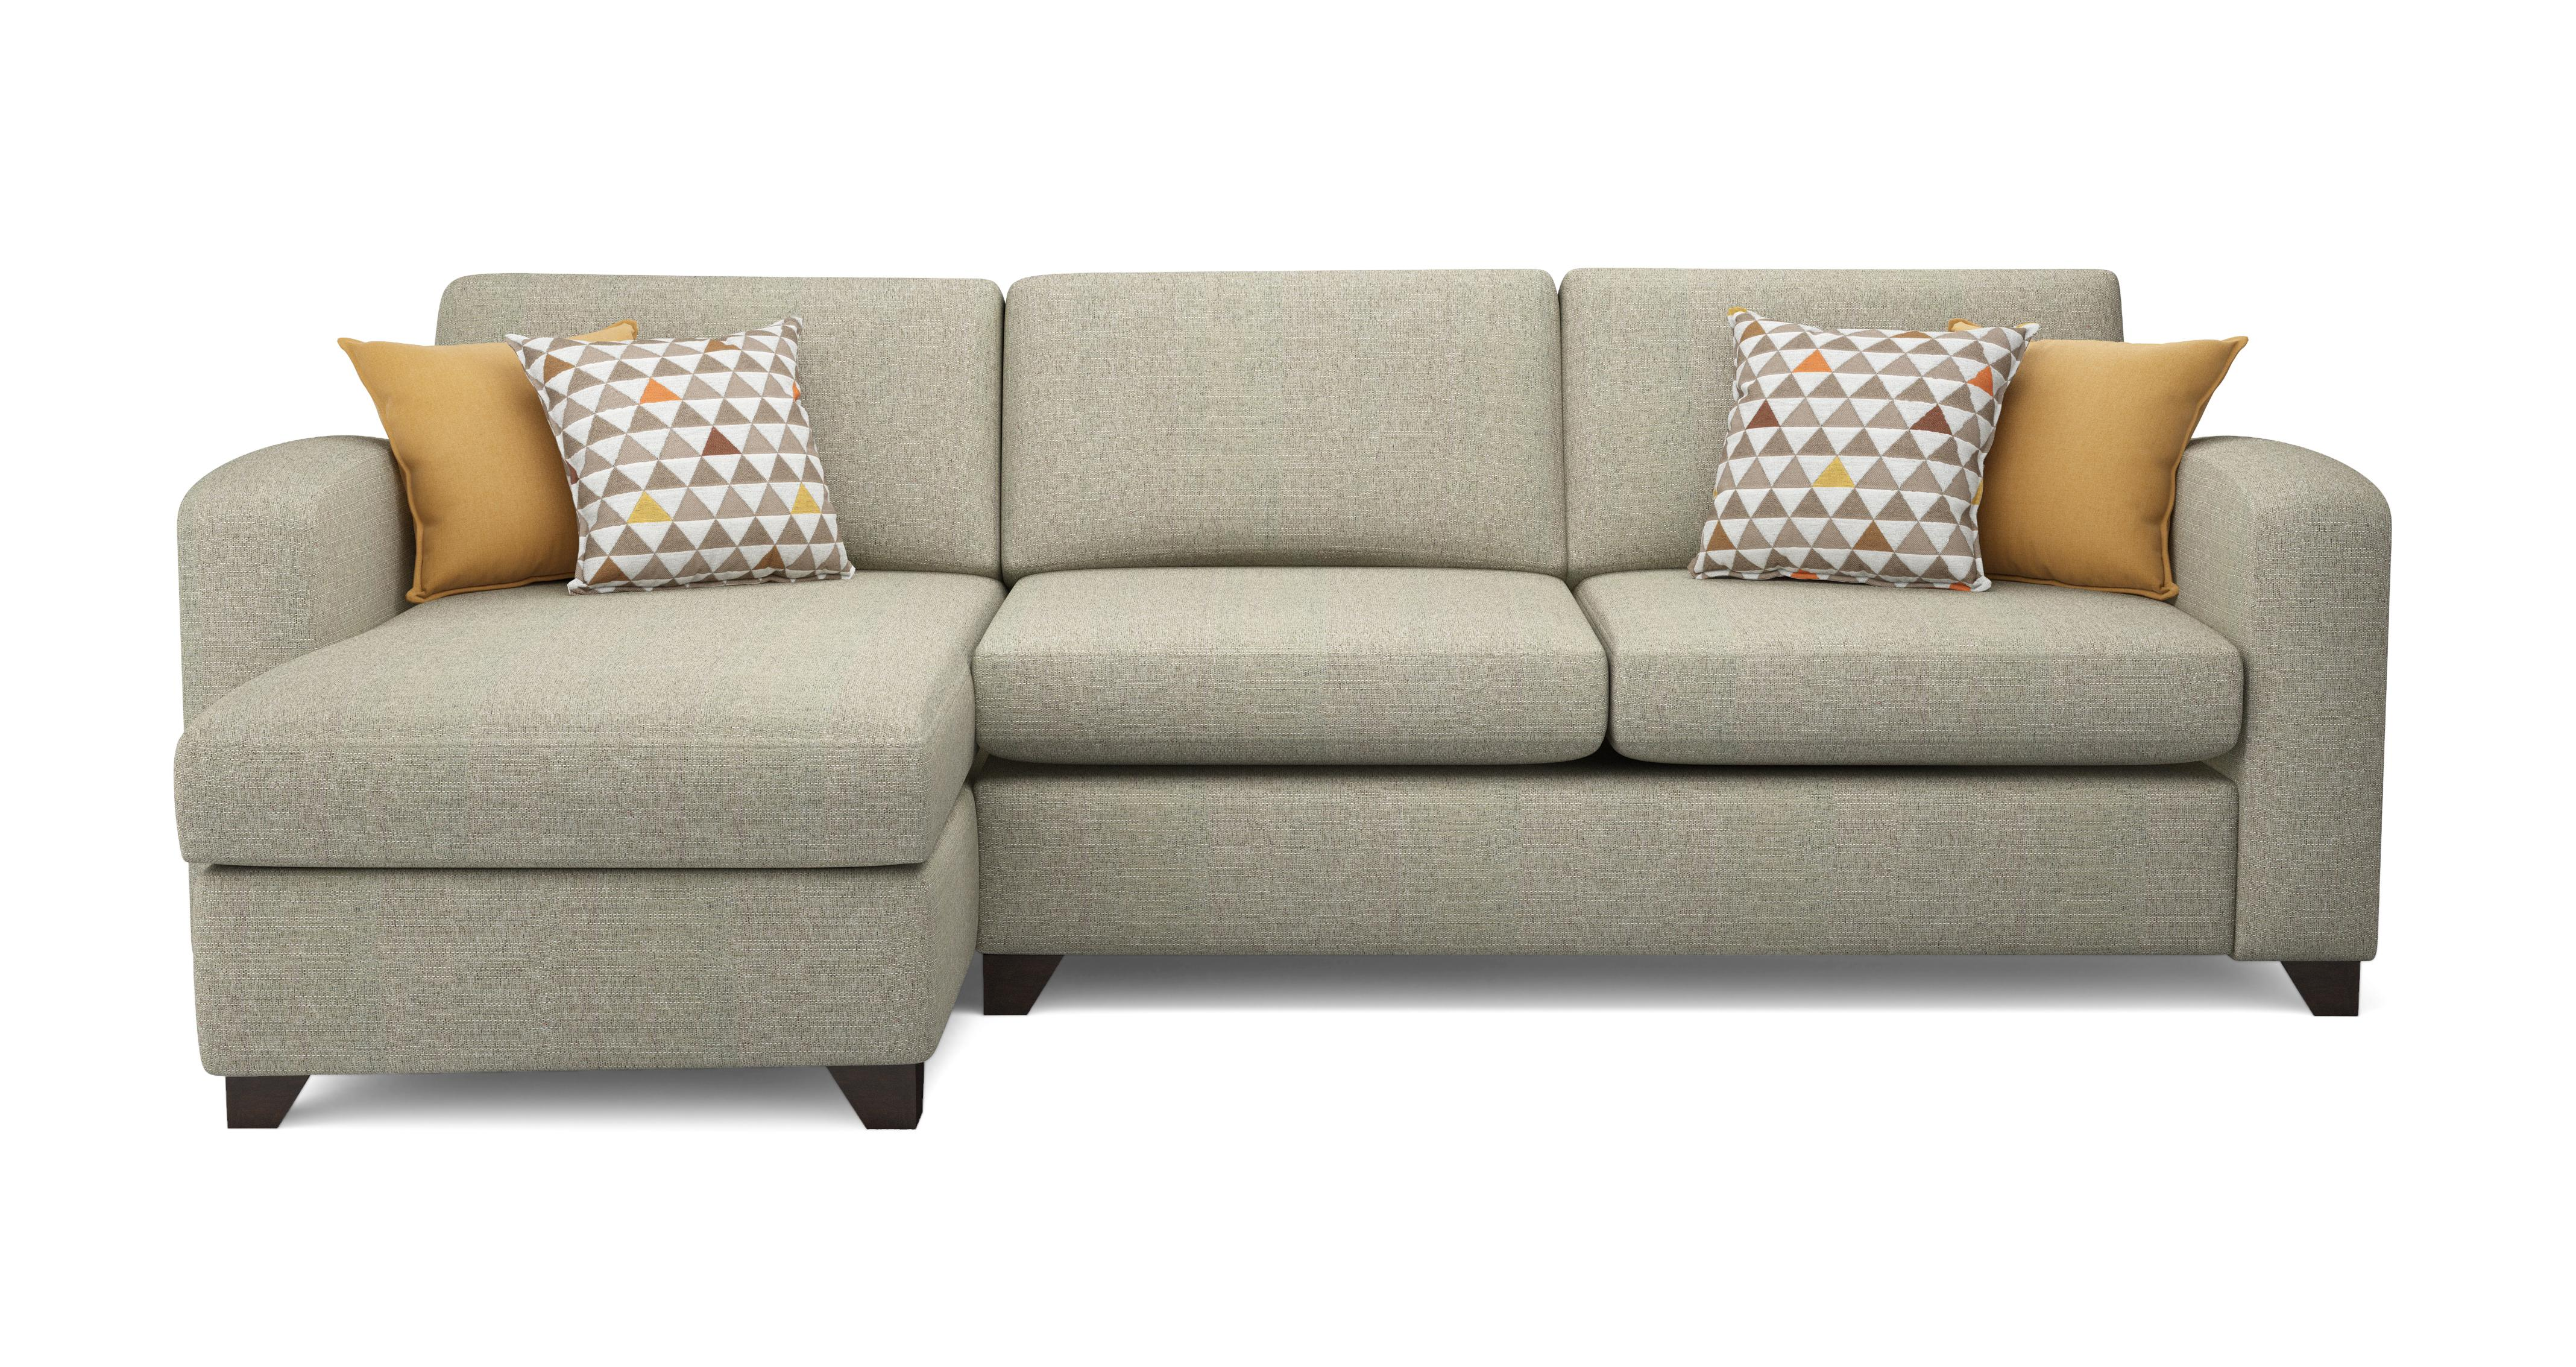 Quality Corner Sofas In Both Leather & Fabric Ireland - Creams and Beiges | DFS Ireland